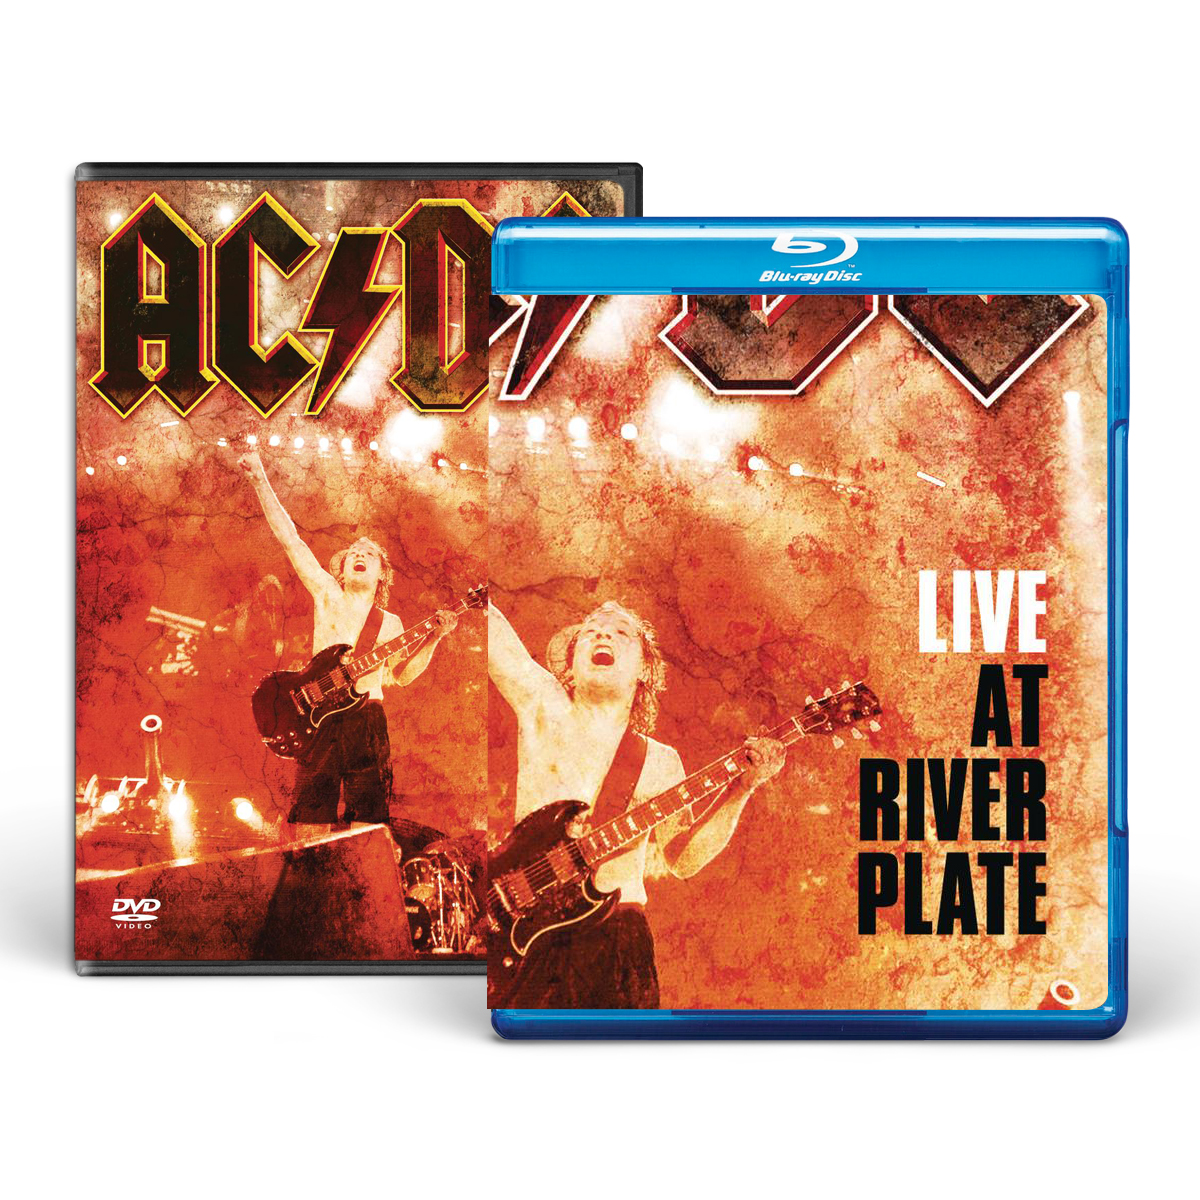 AC/DC Live At River Plate DVD